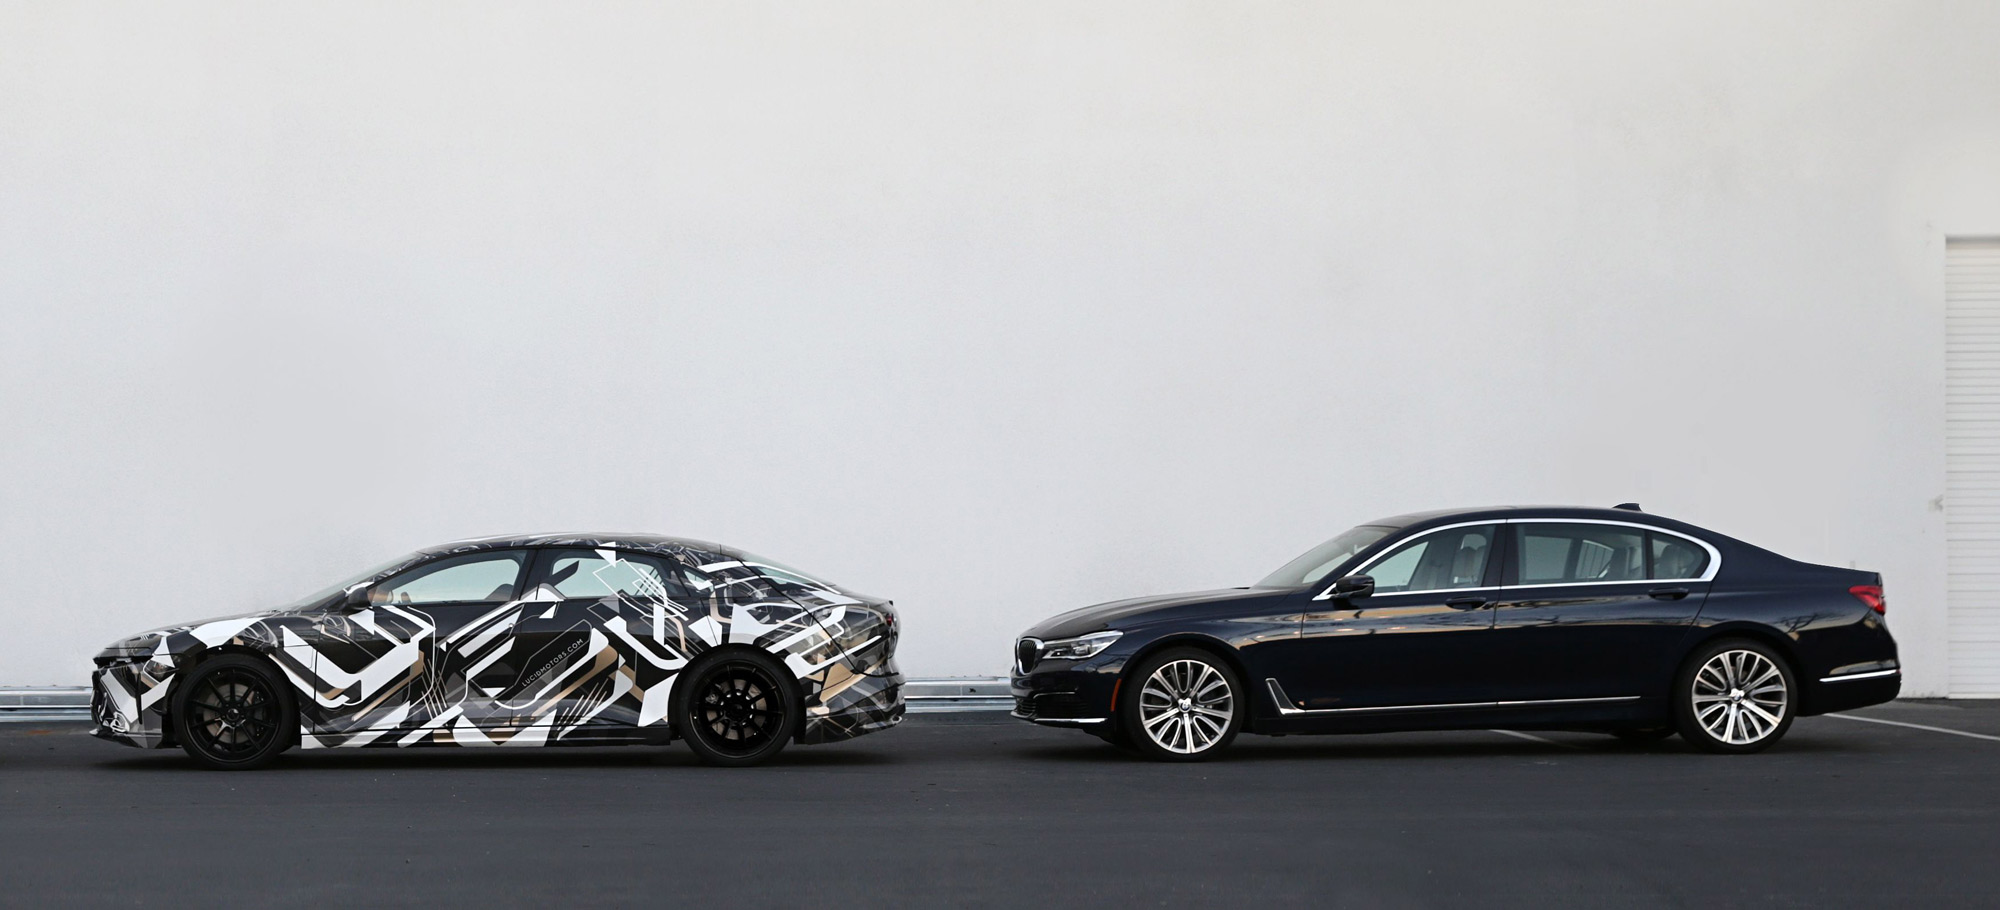 Lucid Motors and BMW